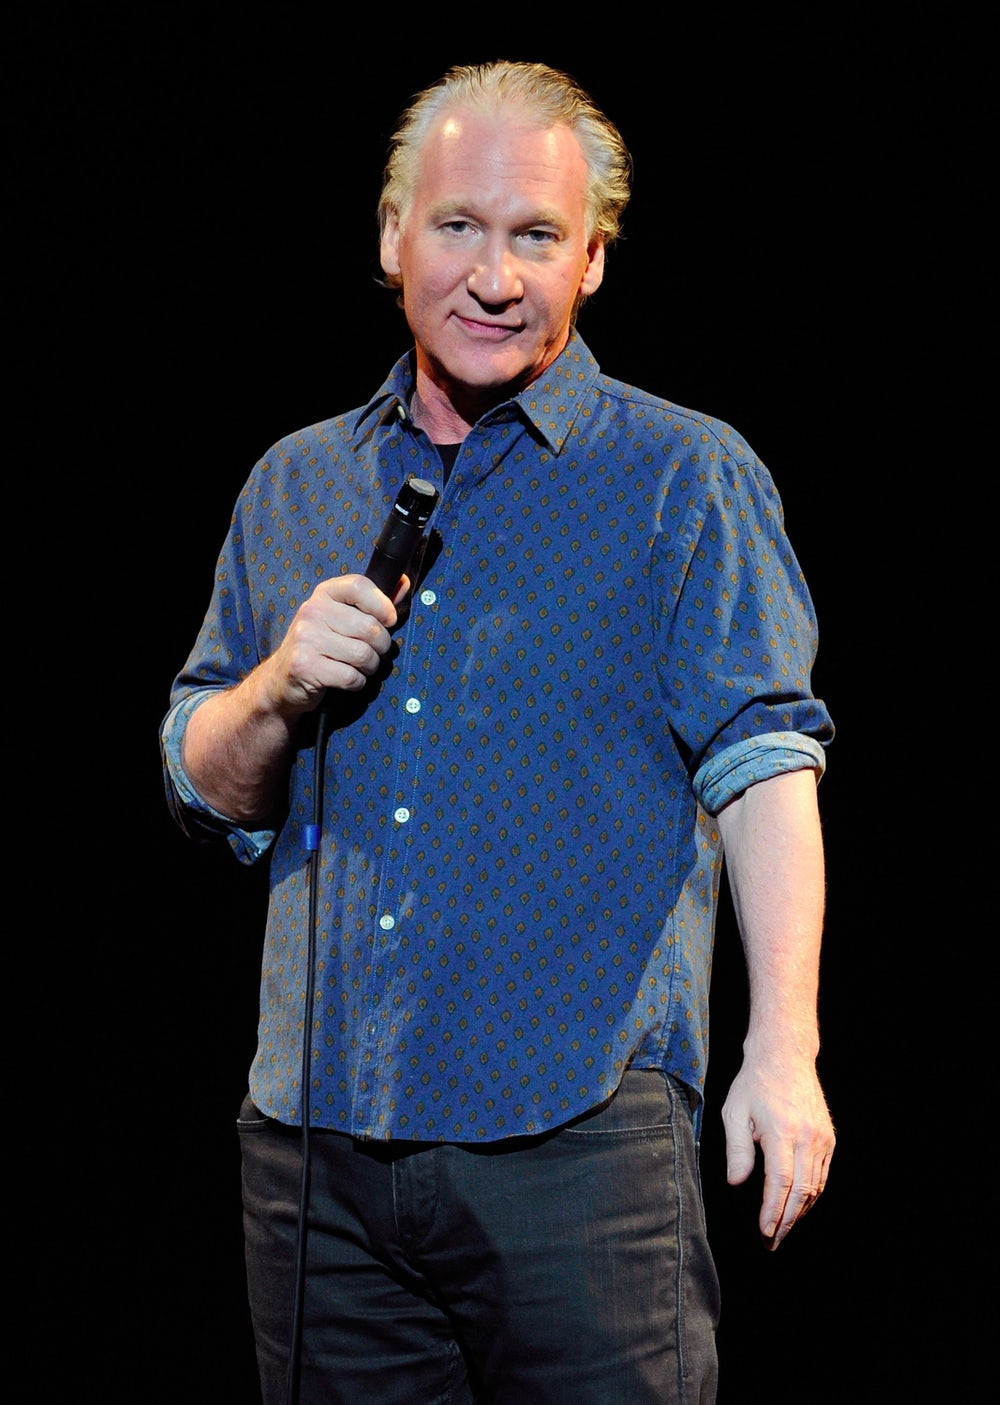 Bill Maher performs onstage in 2013. In the past he has spoken out against political correctness and apologizing for being politically incorrect.